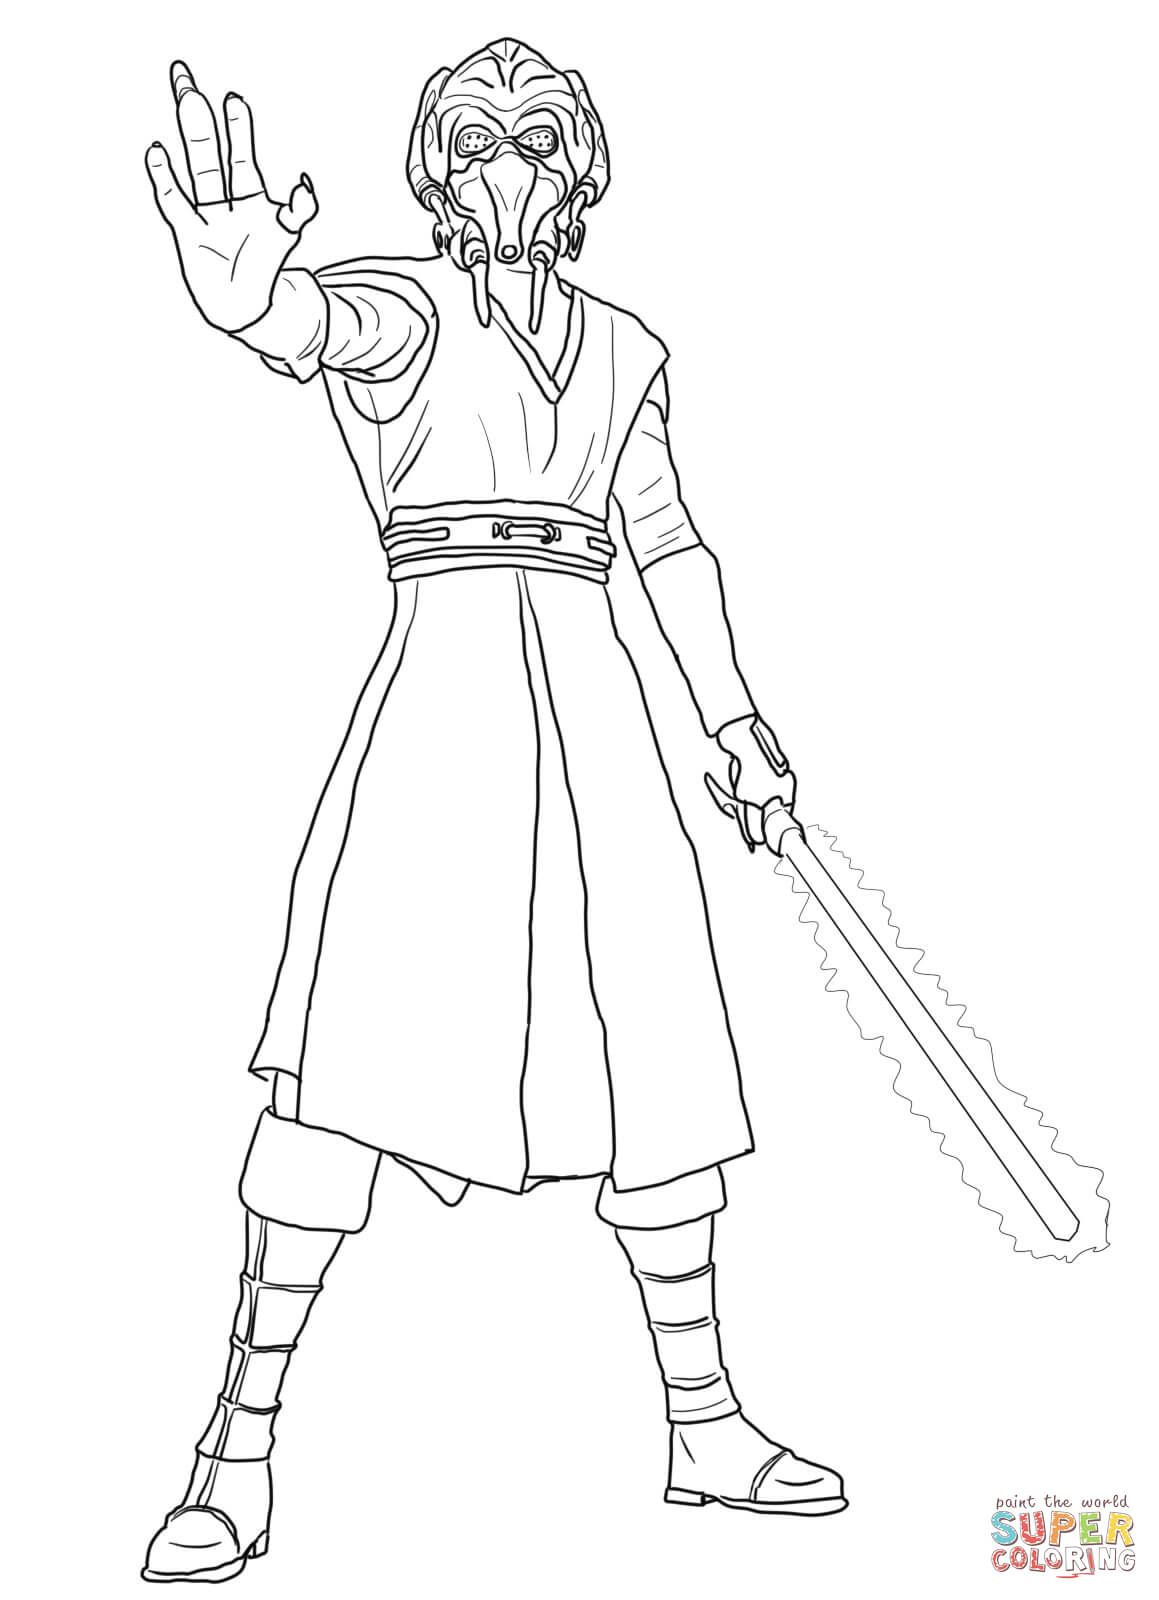 Star Wars Clone Wars Coloring Pages Jedi. Plo Koon coloring page from Revenge of the Sith category  Select 25238 printable crafts cartoons nature animals Bible and many more Super Coloring LineArt Star Wars Pinterest Craft